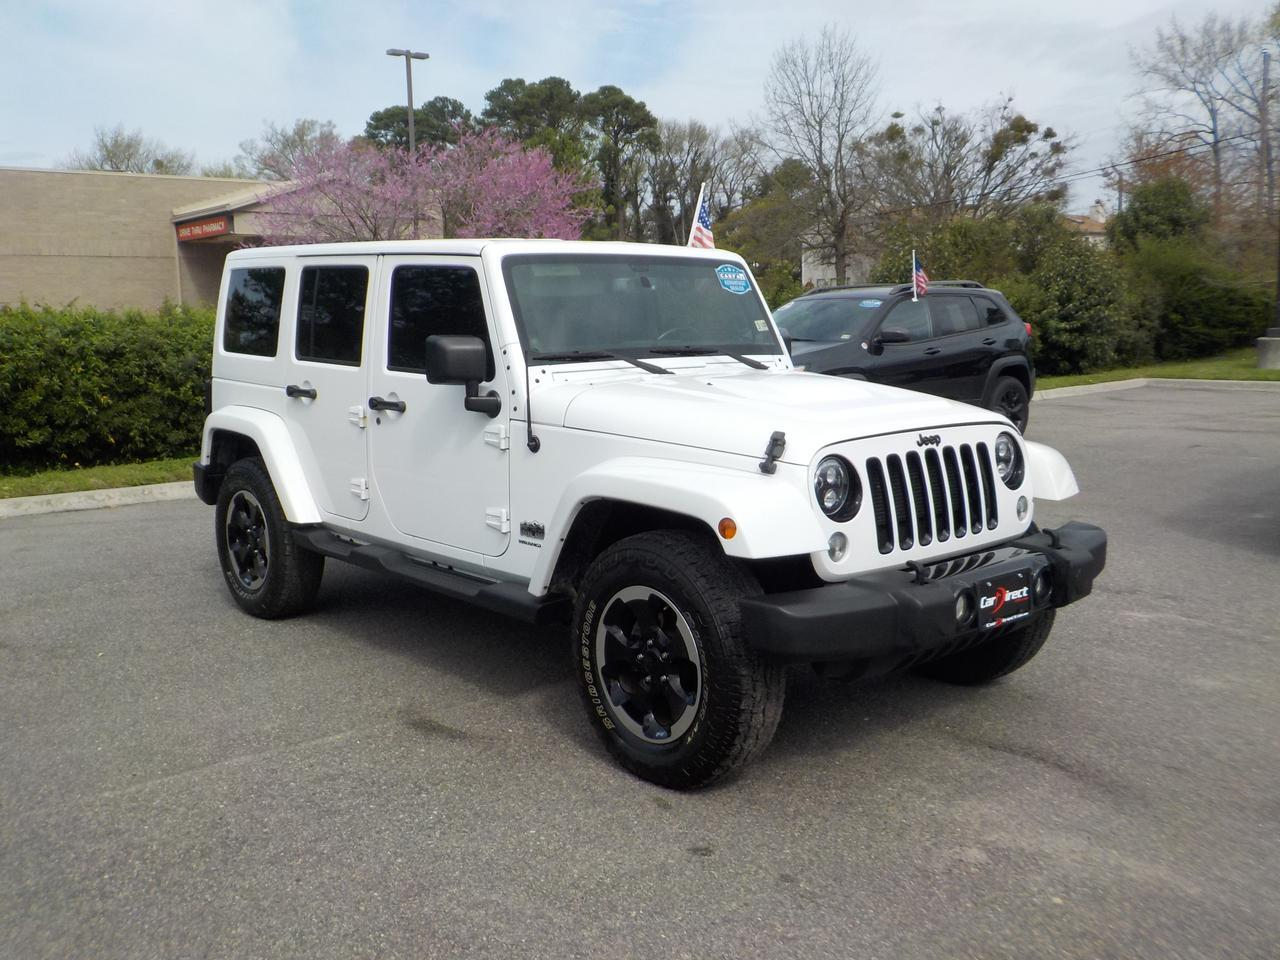 2014 JEEP WRANGLER UNLIMITED SAHARA POLAR EDITION 4X4, NAVIGATION, BLUETOOTH, HARD TOP, REMOTE START, HEATED SEATS! Virginia Beach VA